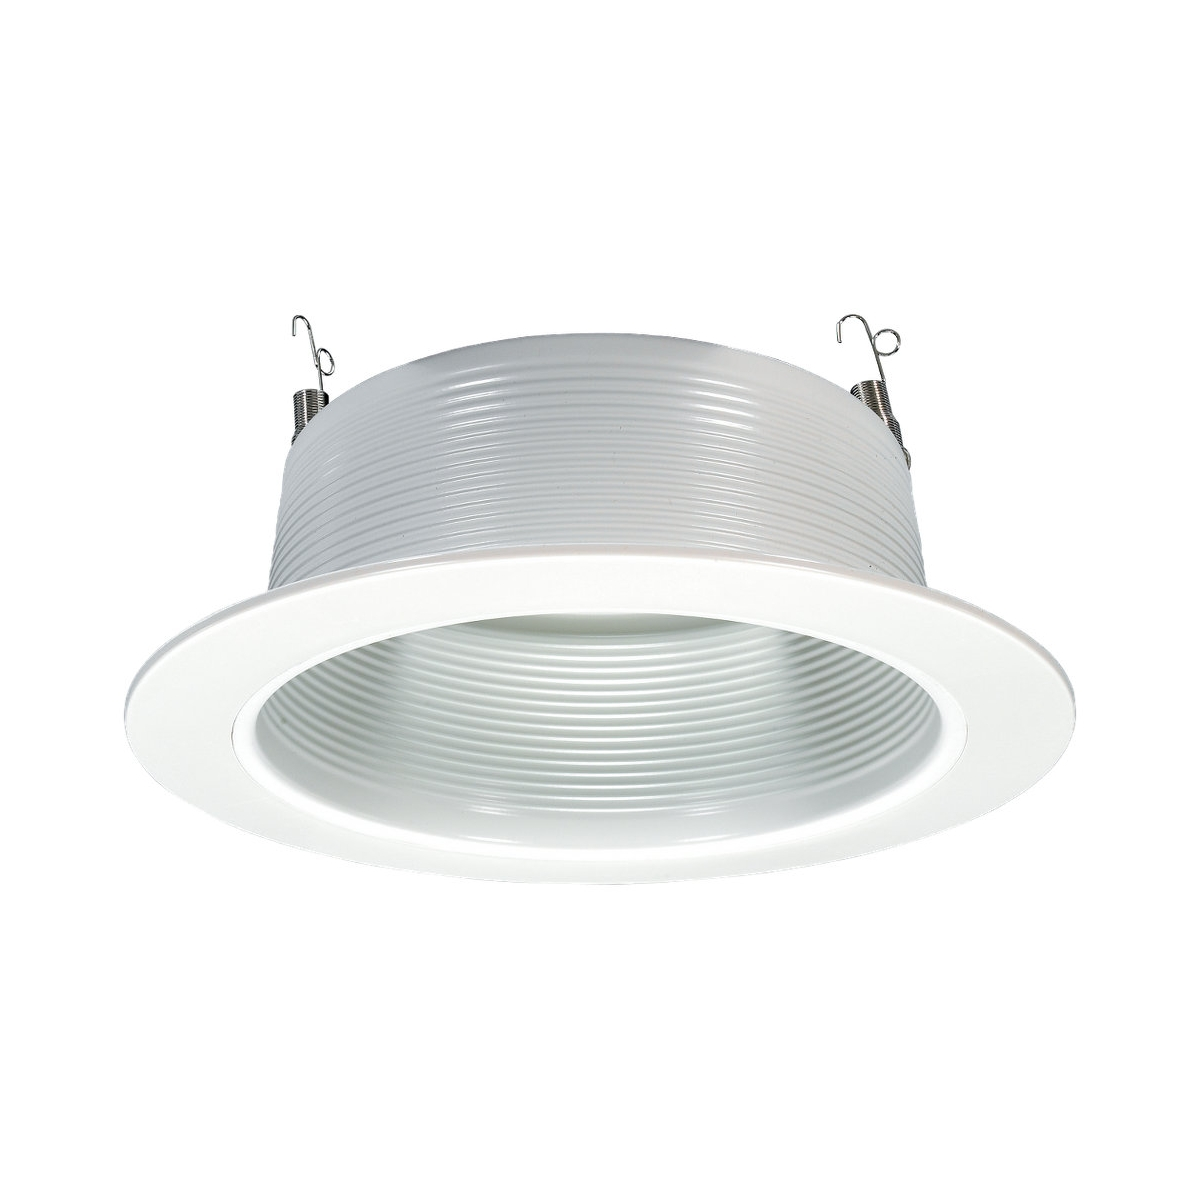 Sea Gull Lighting Signature Recessed Light in White 1129-14 photo